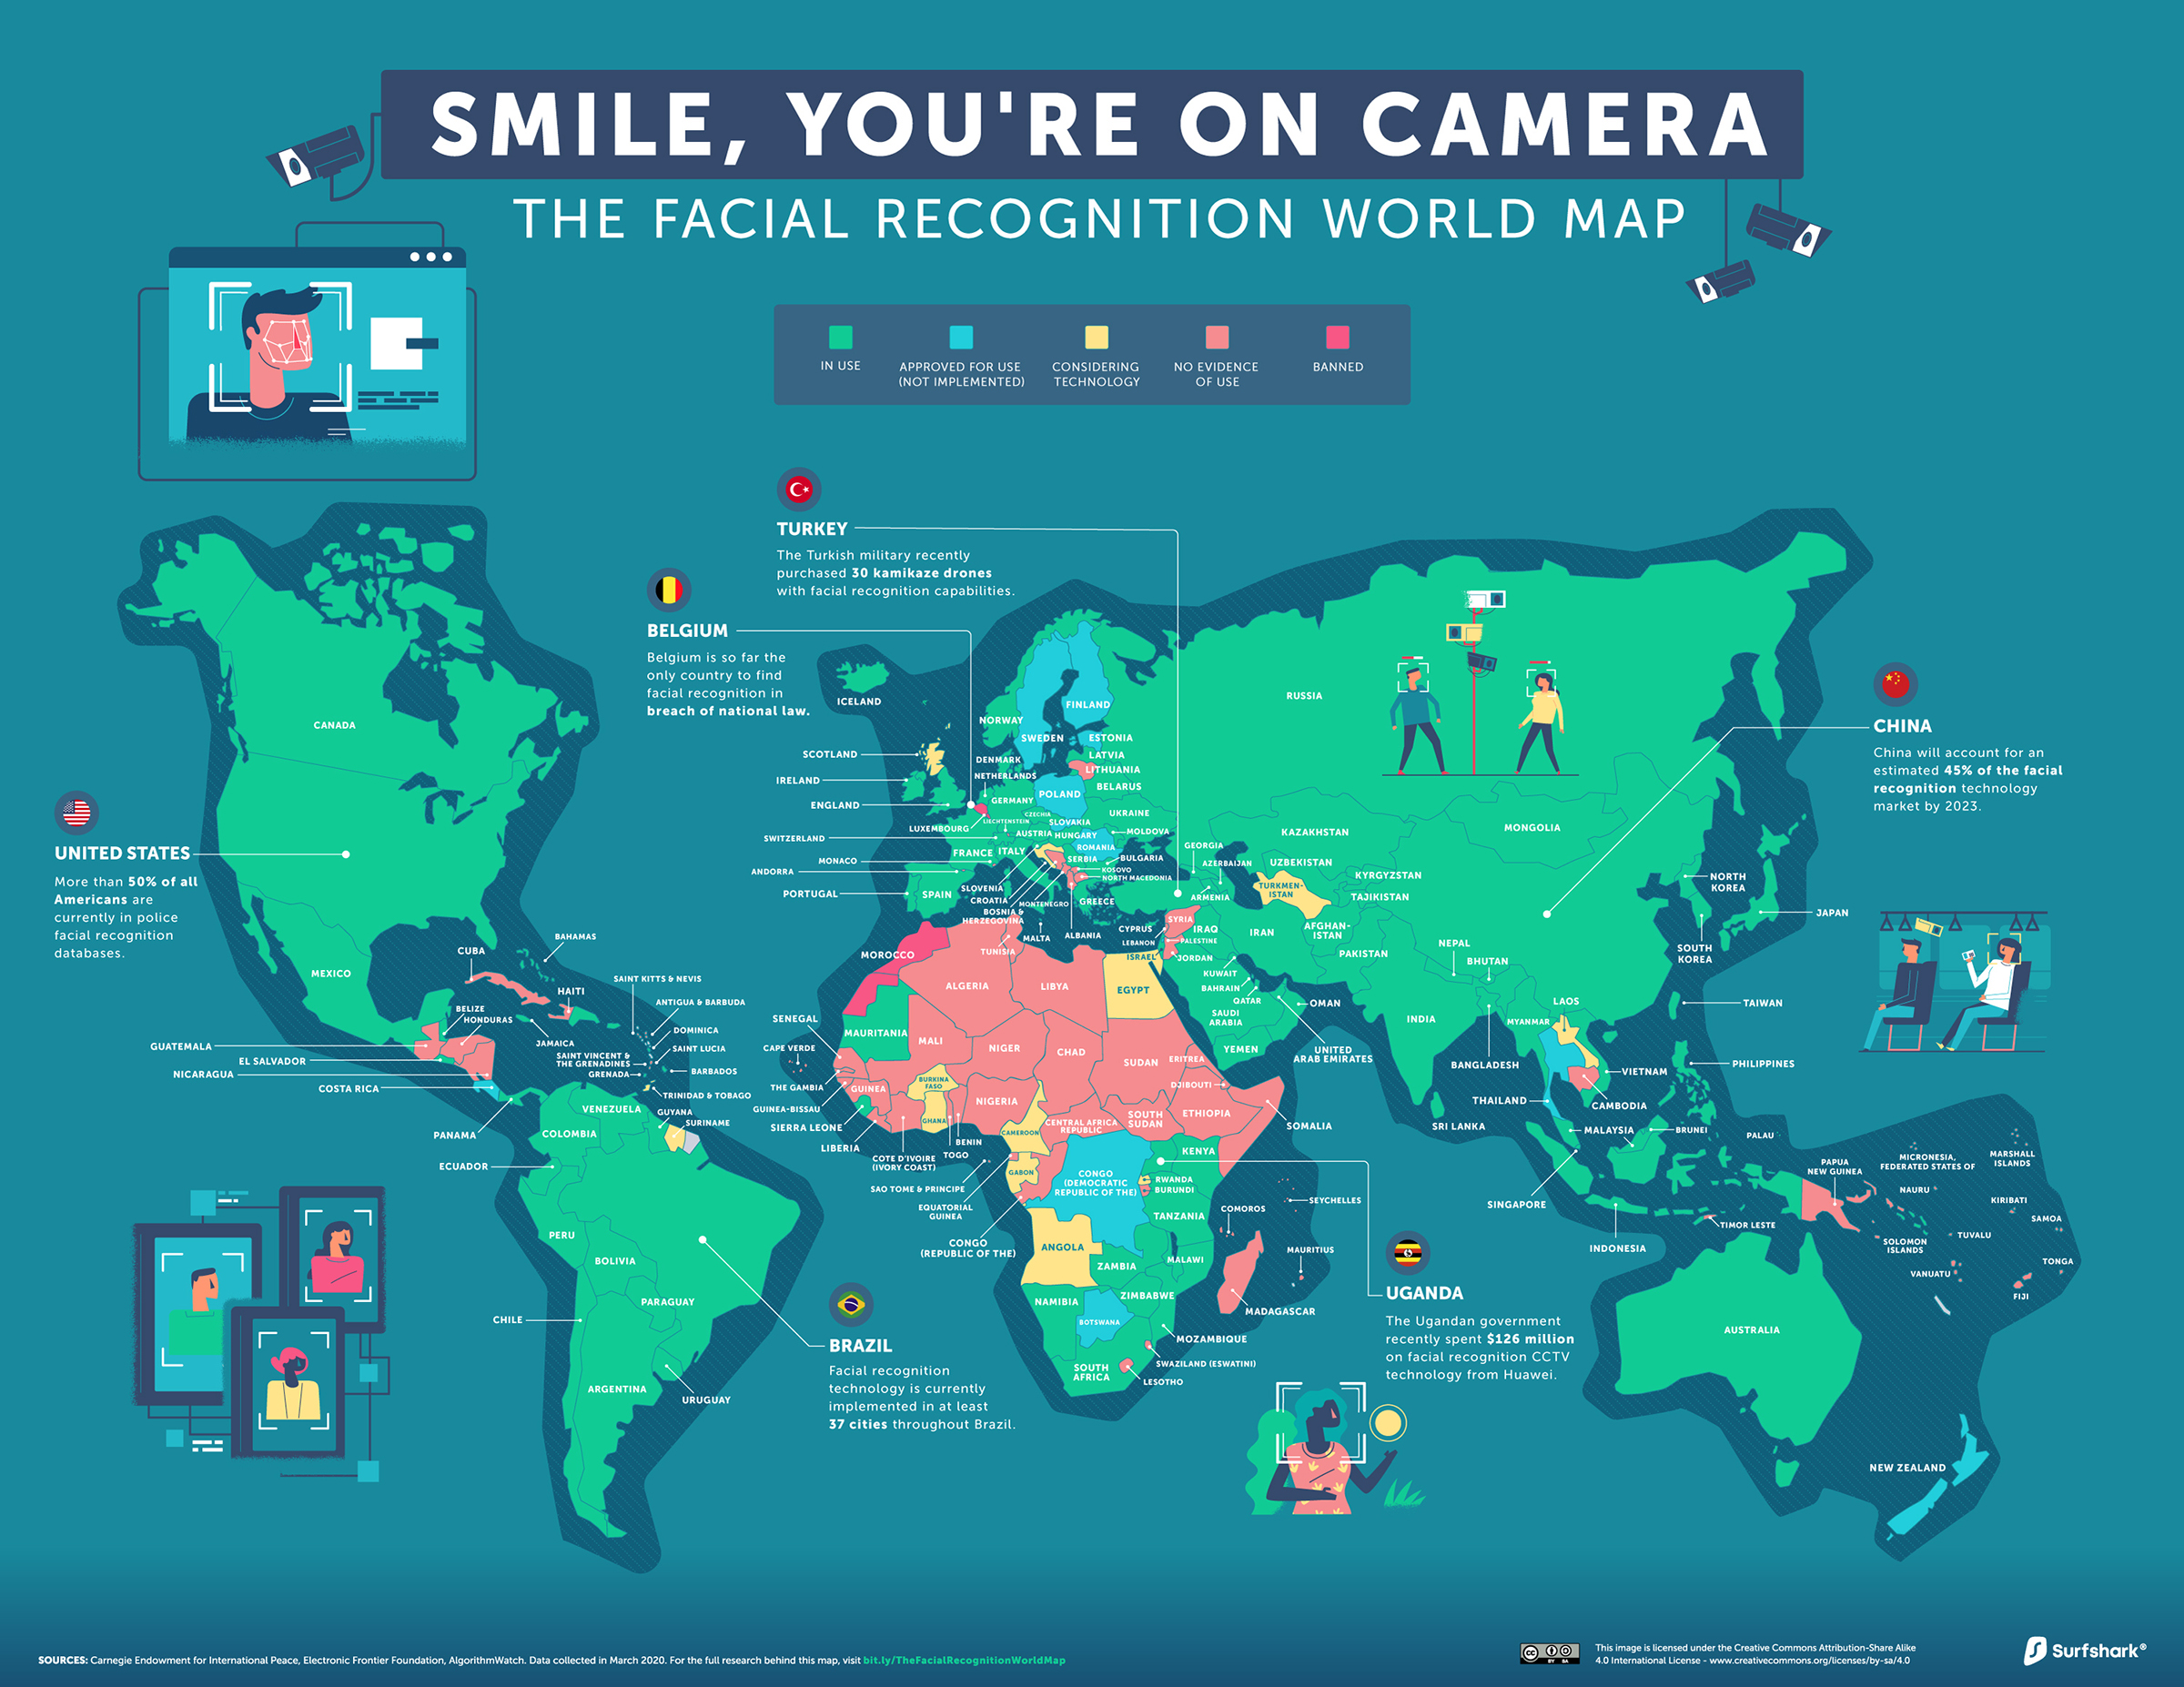 Smile, You're On Camera: The Facial Recognition World Map